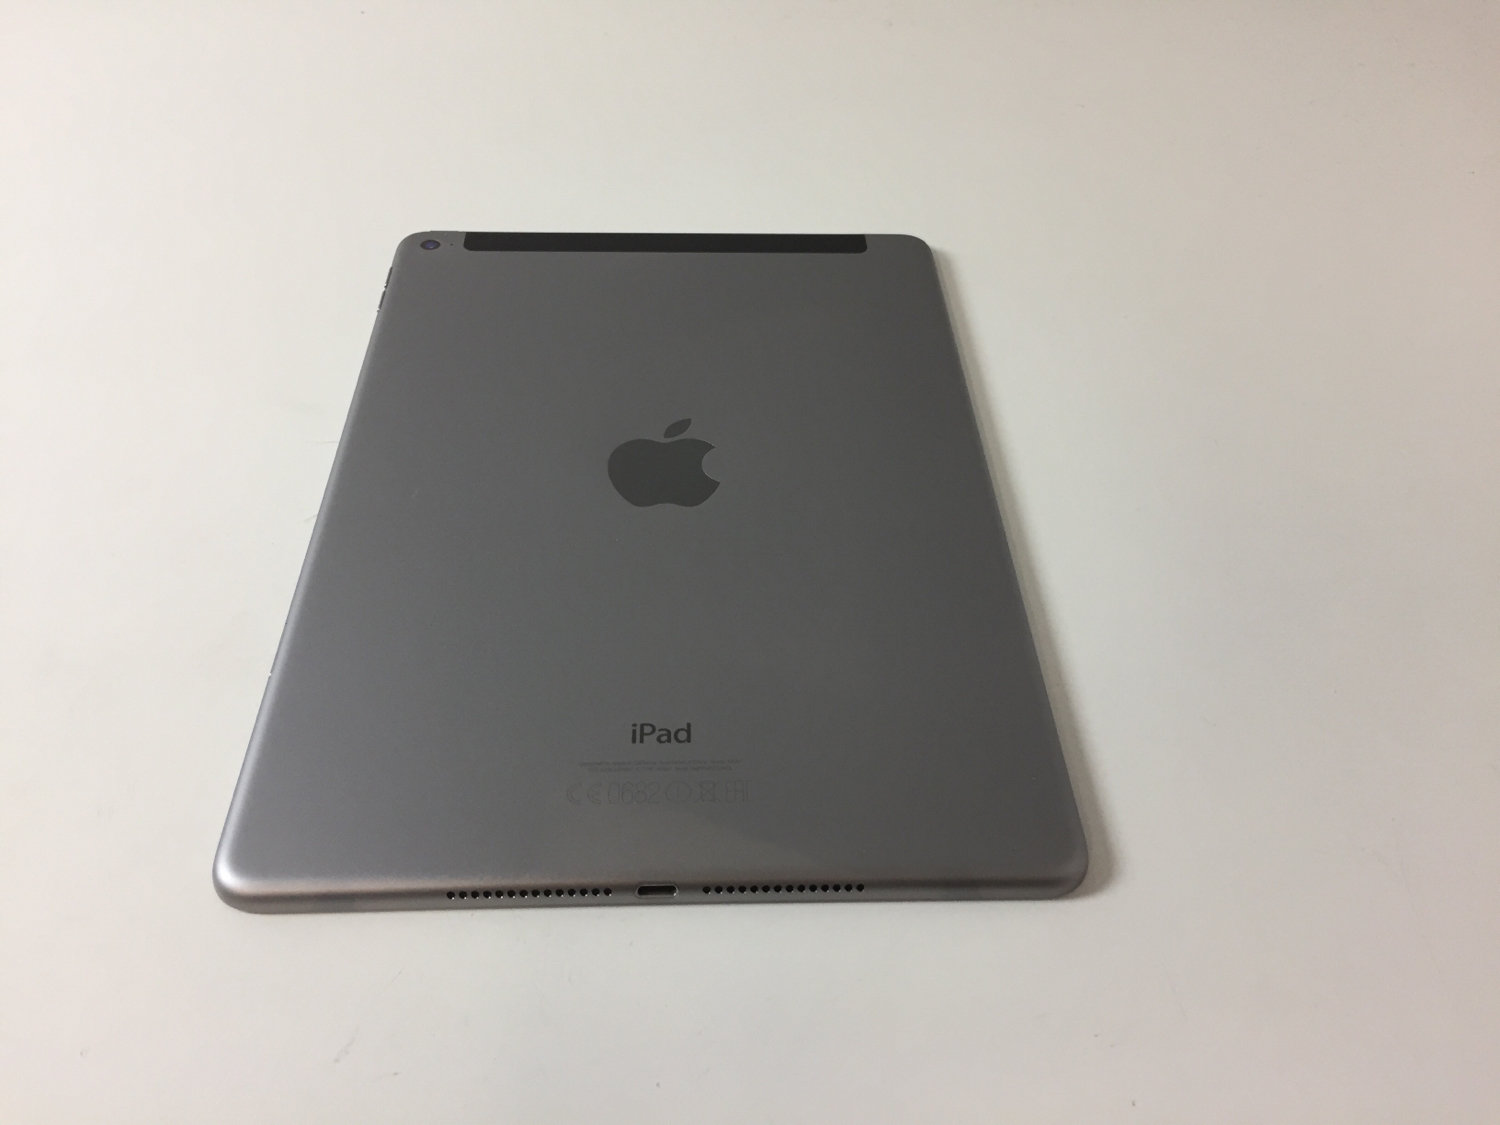 iPad Air 2 Wi-Fi + Cellular 16GB, 16 GB, Gray, Afbeelding 2